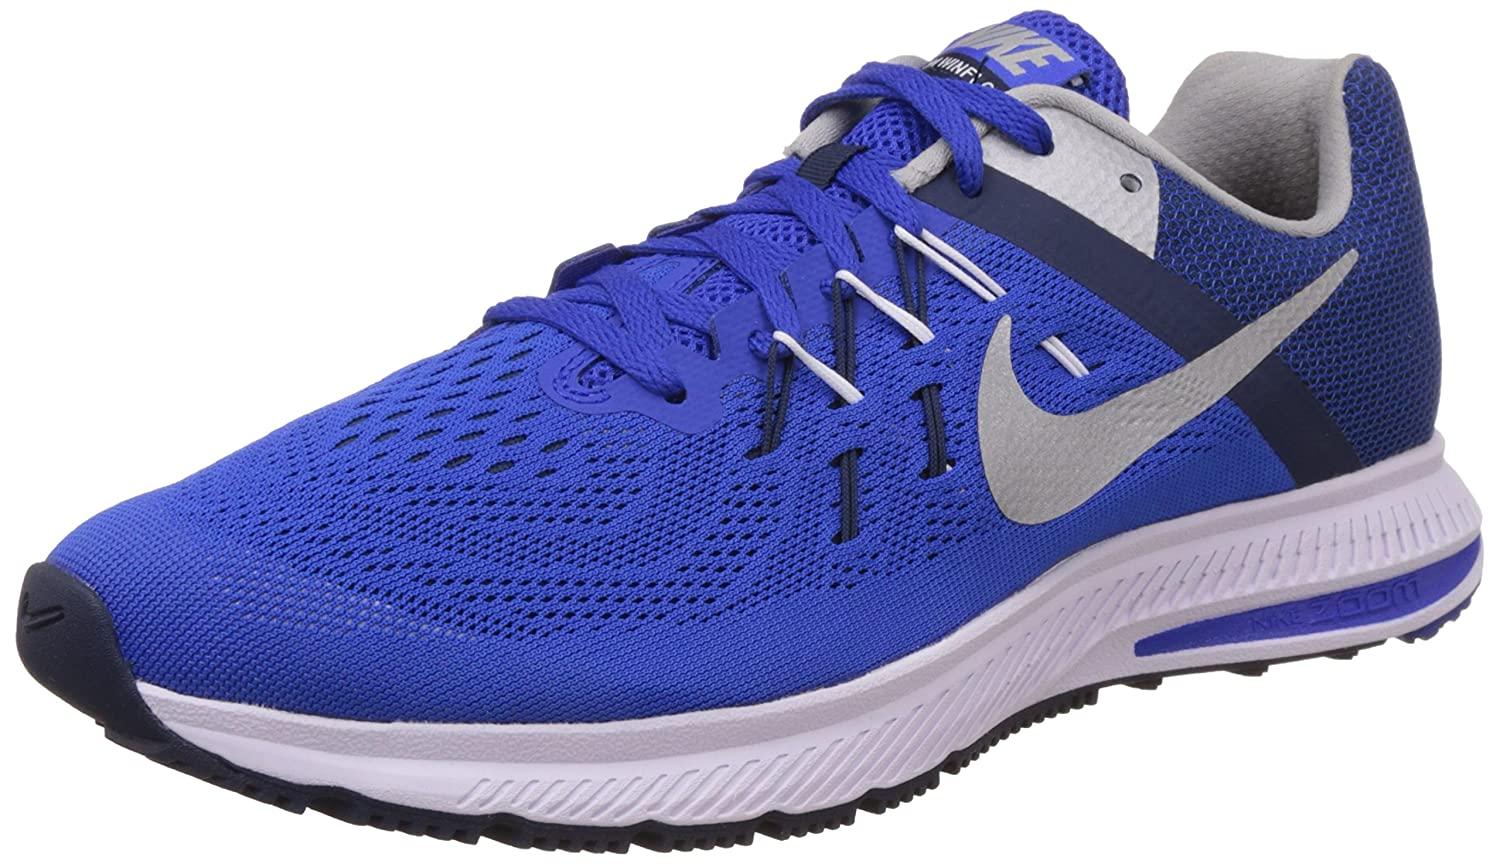 wholesale dealer 8371b 6bc16 Nike Men s Zoom Winflo 2 Racer Blue, Midnight Navy and White Running Shoes  -11 UK India (46 EU)(12 US)  Buy Online at Low Prices in India - Amazon.in